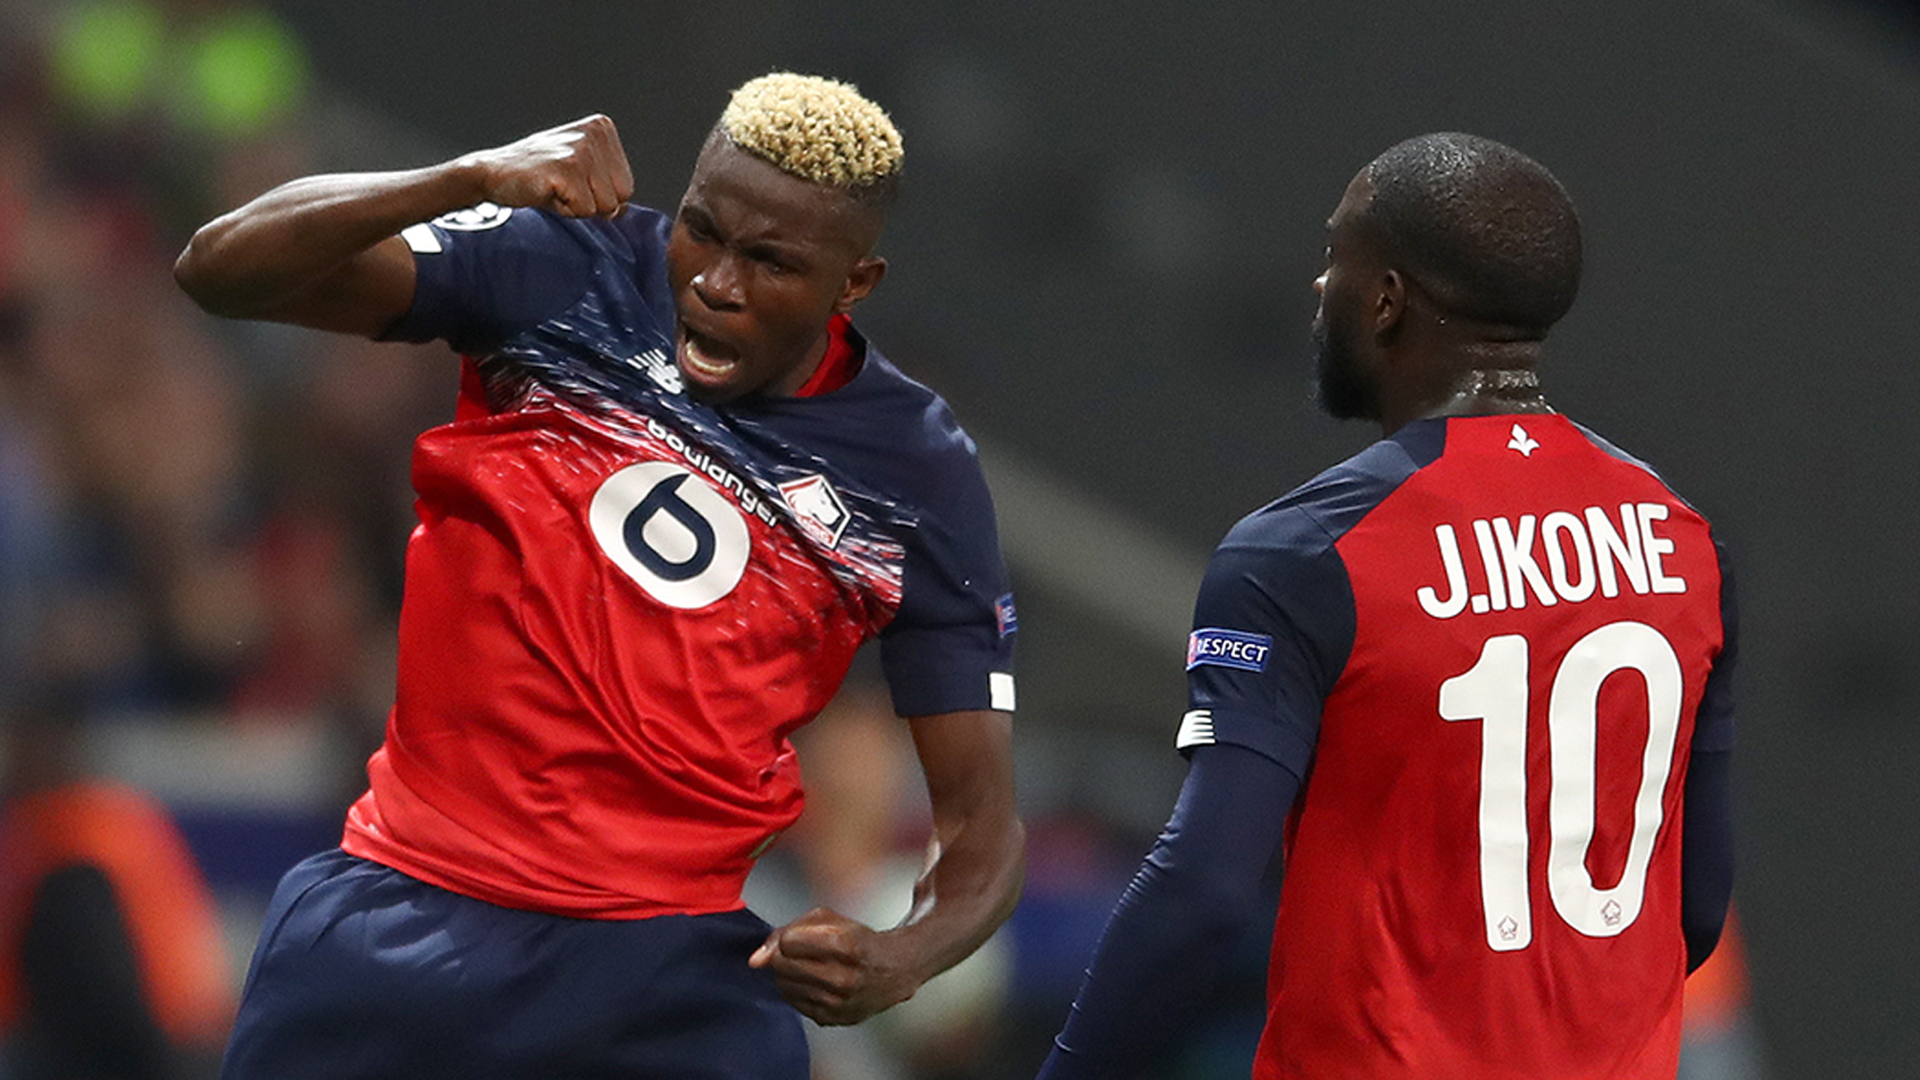 Lille star Osimhen relishes productive Ikone partnership